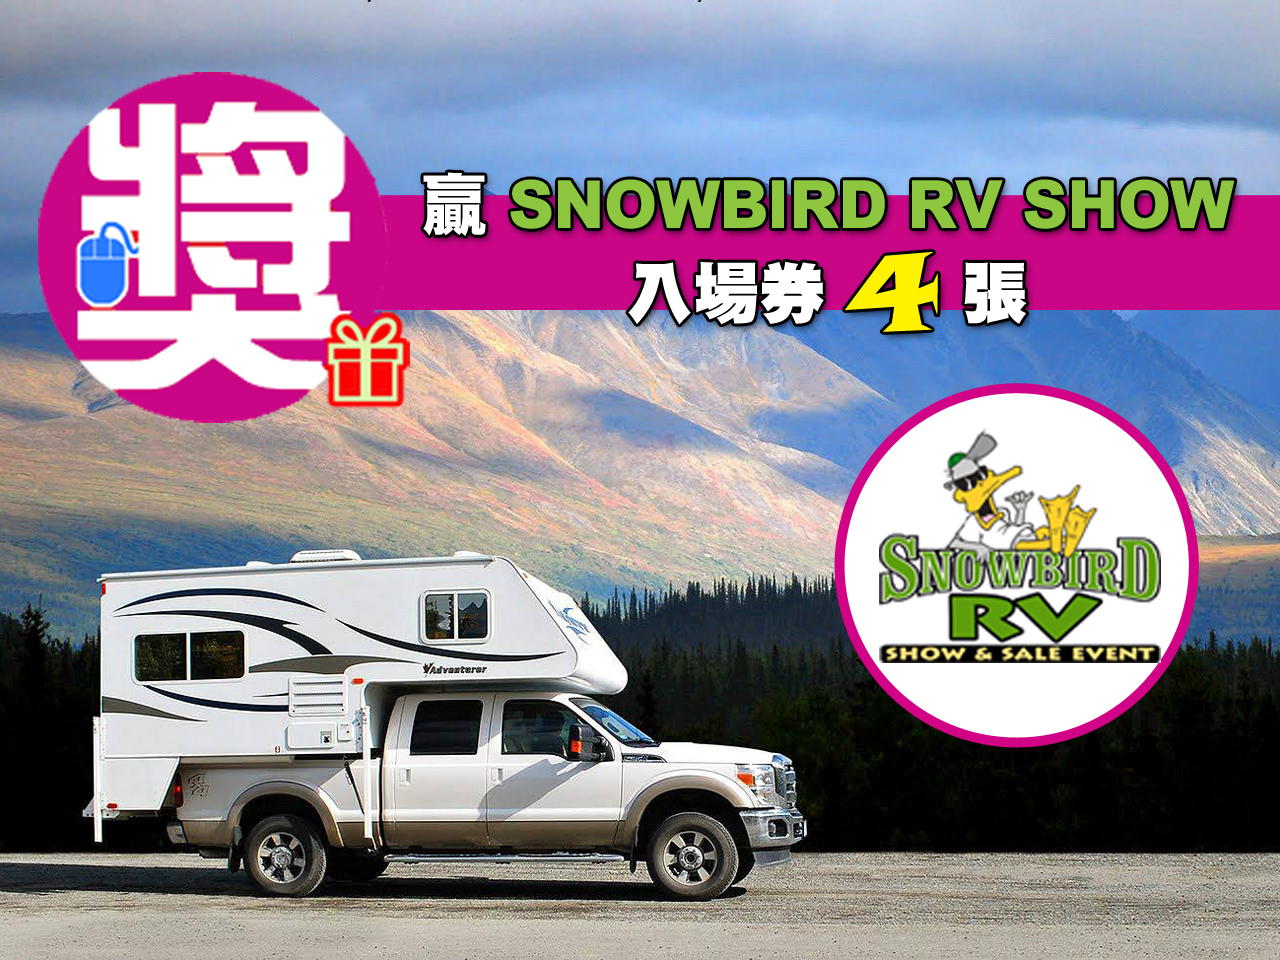 贏 4 張 2018 Snowbird RV Show & Sale Event 入場門票 [已完結